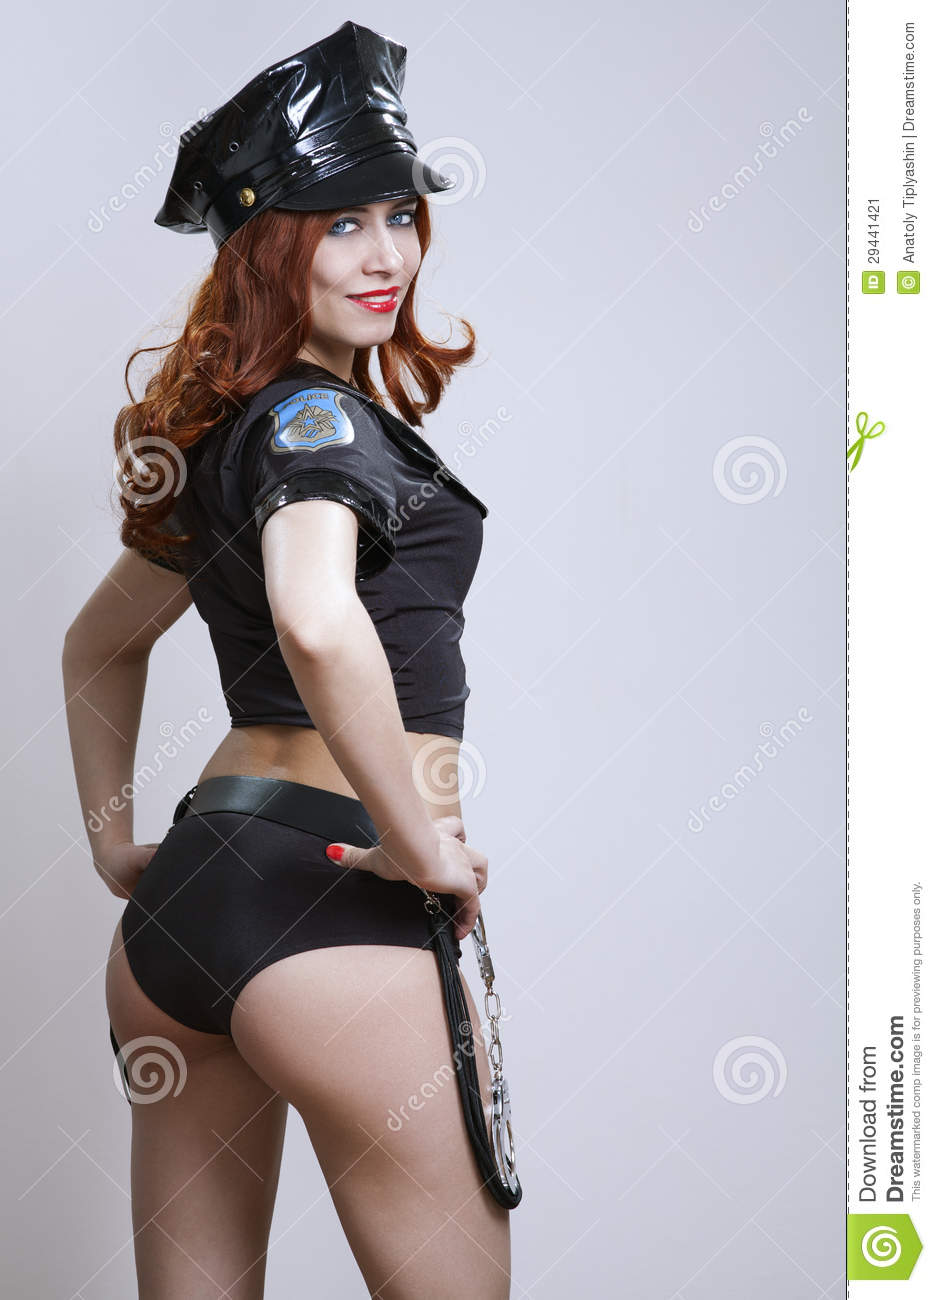 Police babe hot woman interracial suspect